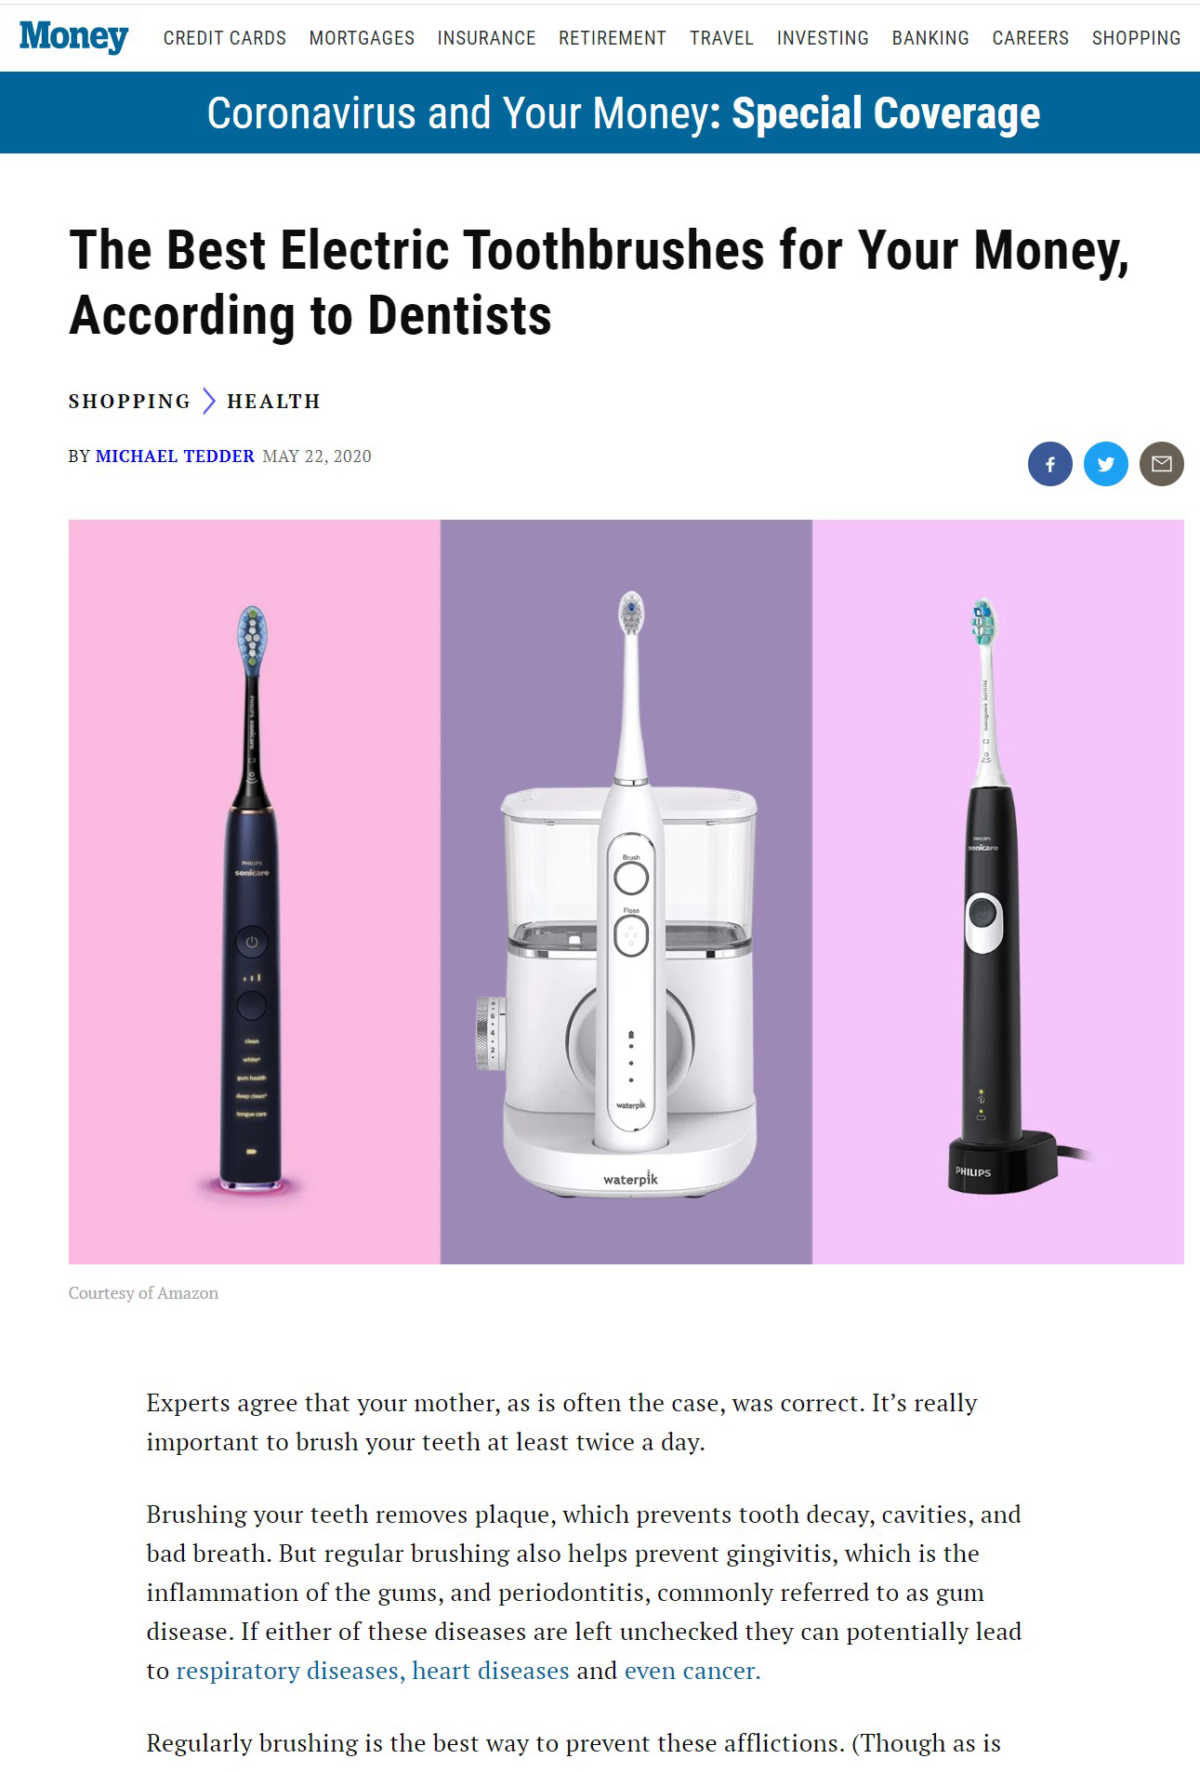 Link to a Money Magazine Article about the Dr. Pia talks with Money Magazine about the Best Electric Toothbrushes according to dentists.